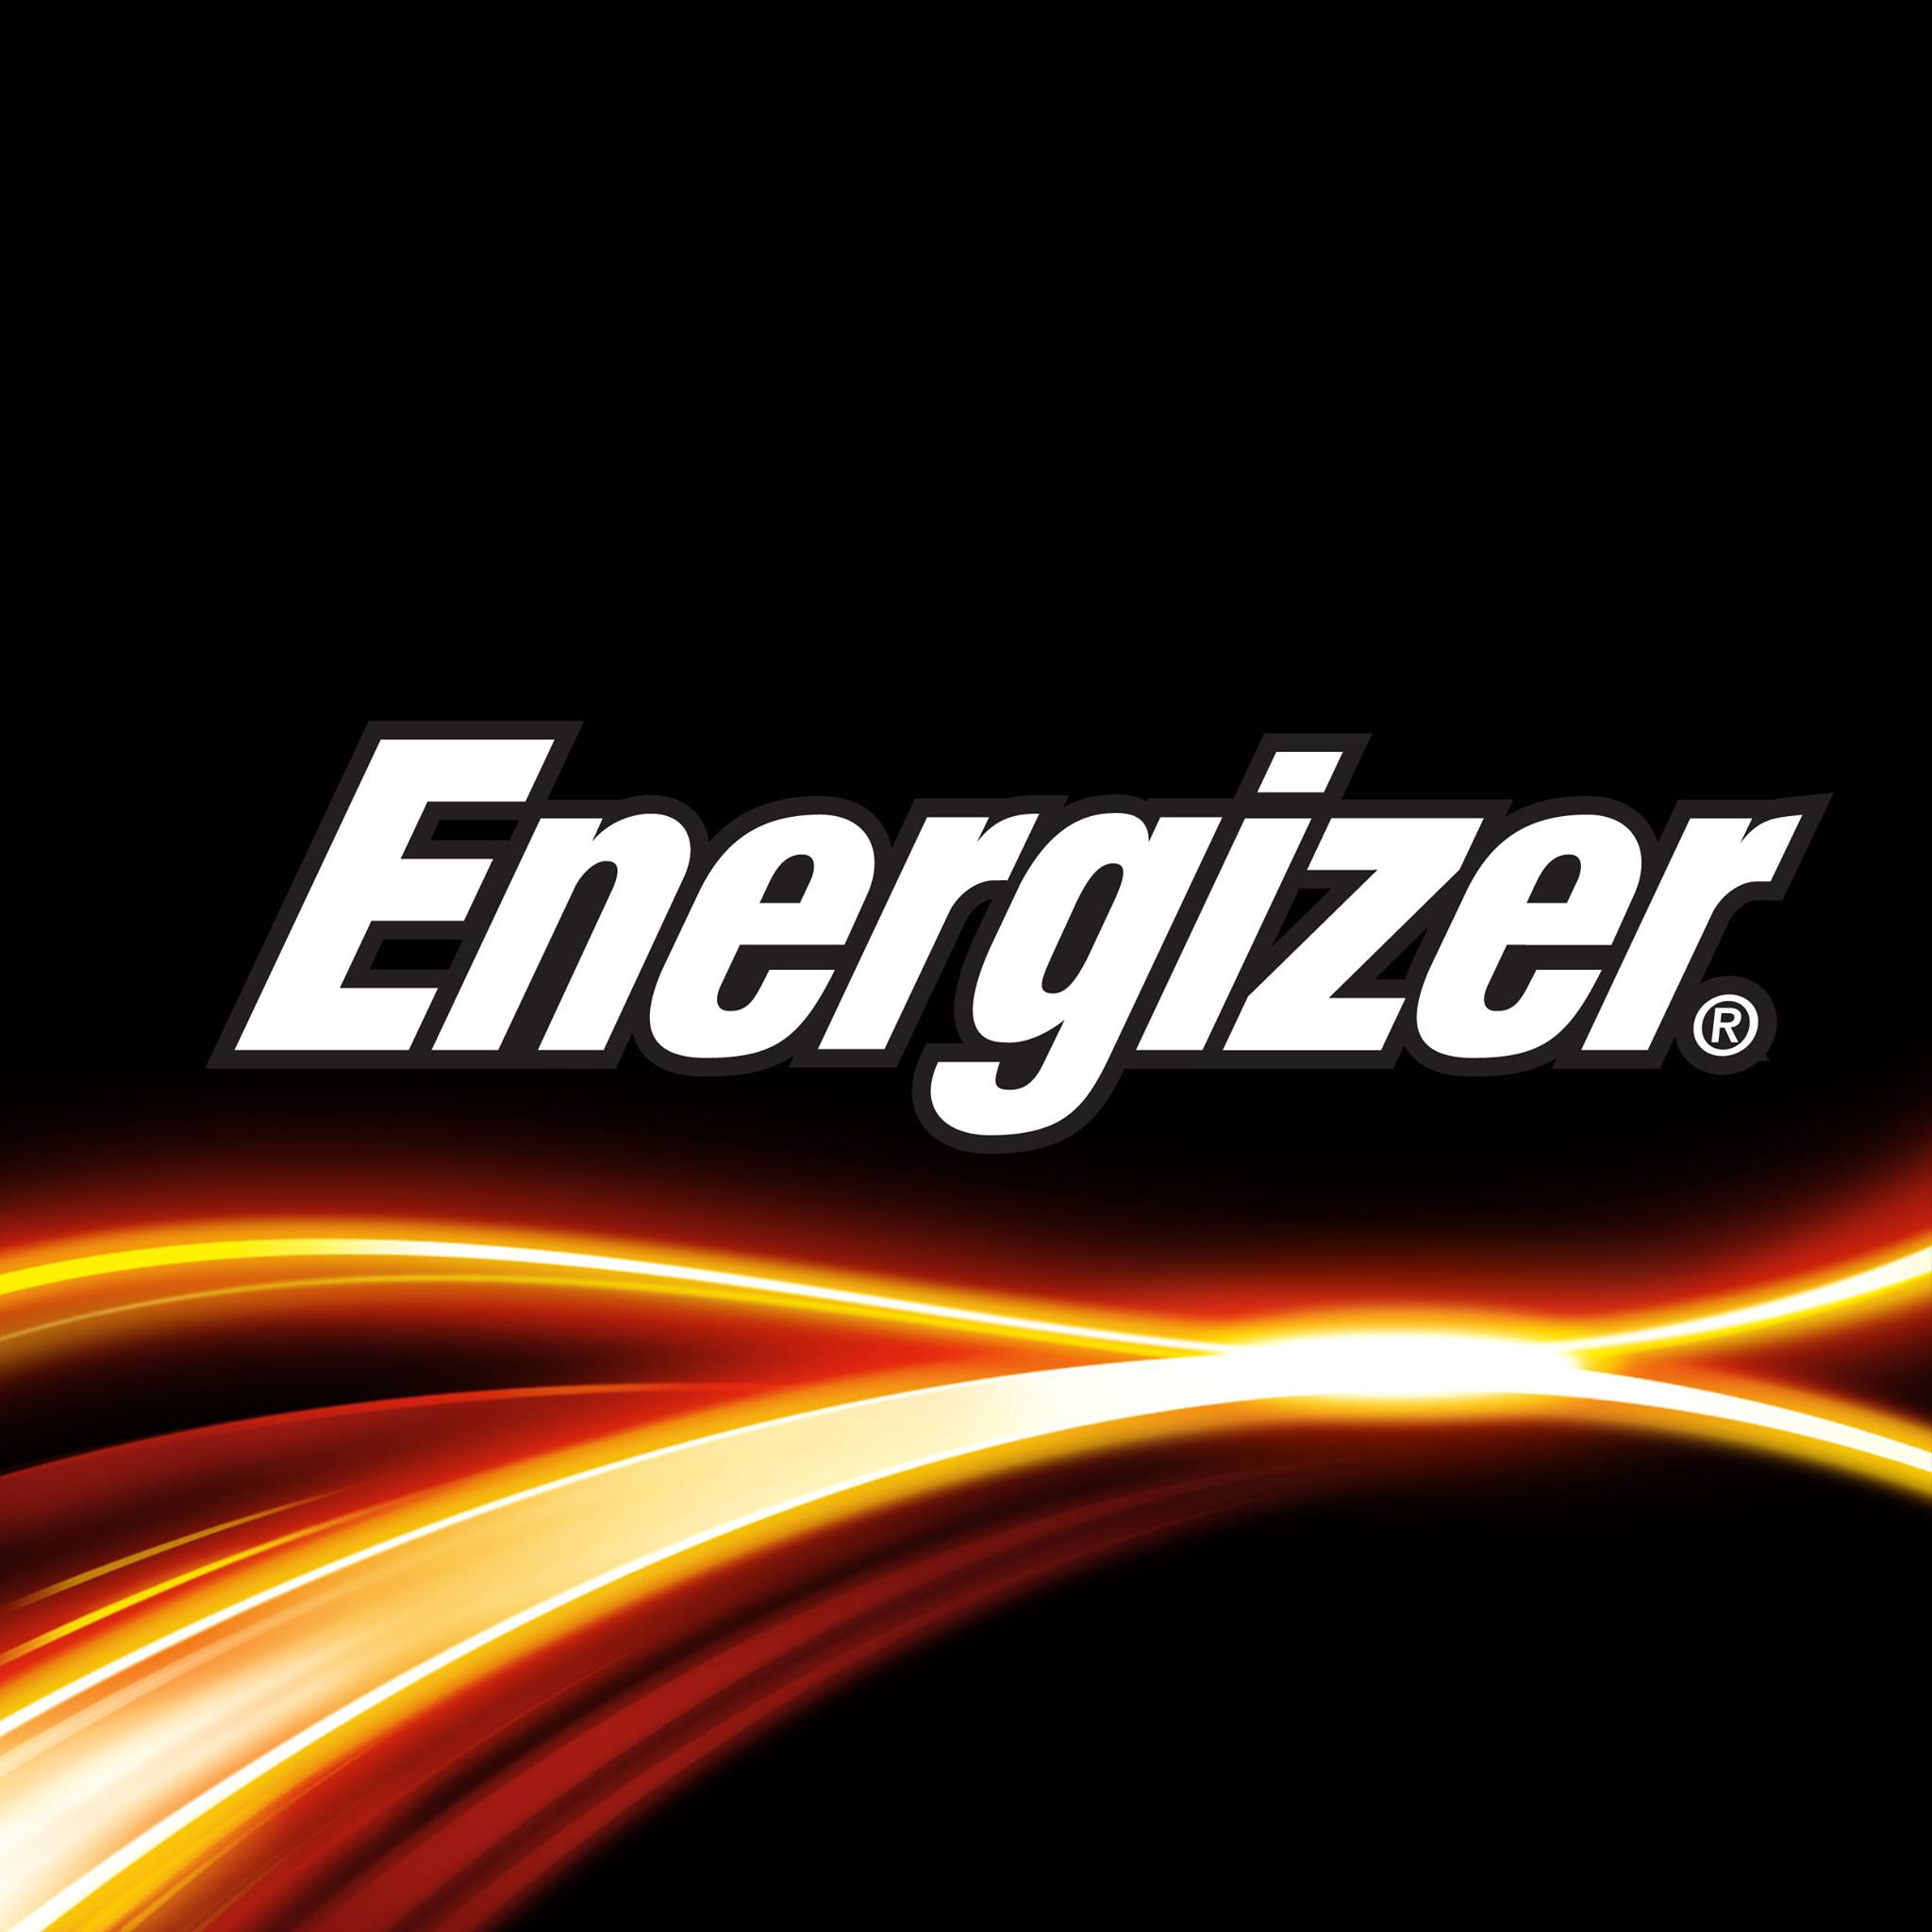 promo code 36ac8 7a20d ... announced the pricing of the offerings of  500 million of 6.375% senior  notes due 2026 by its wholly-owned subsidiary, Energizer Gamma Acquisition,  ...